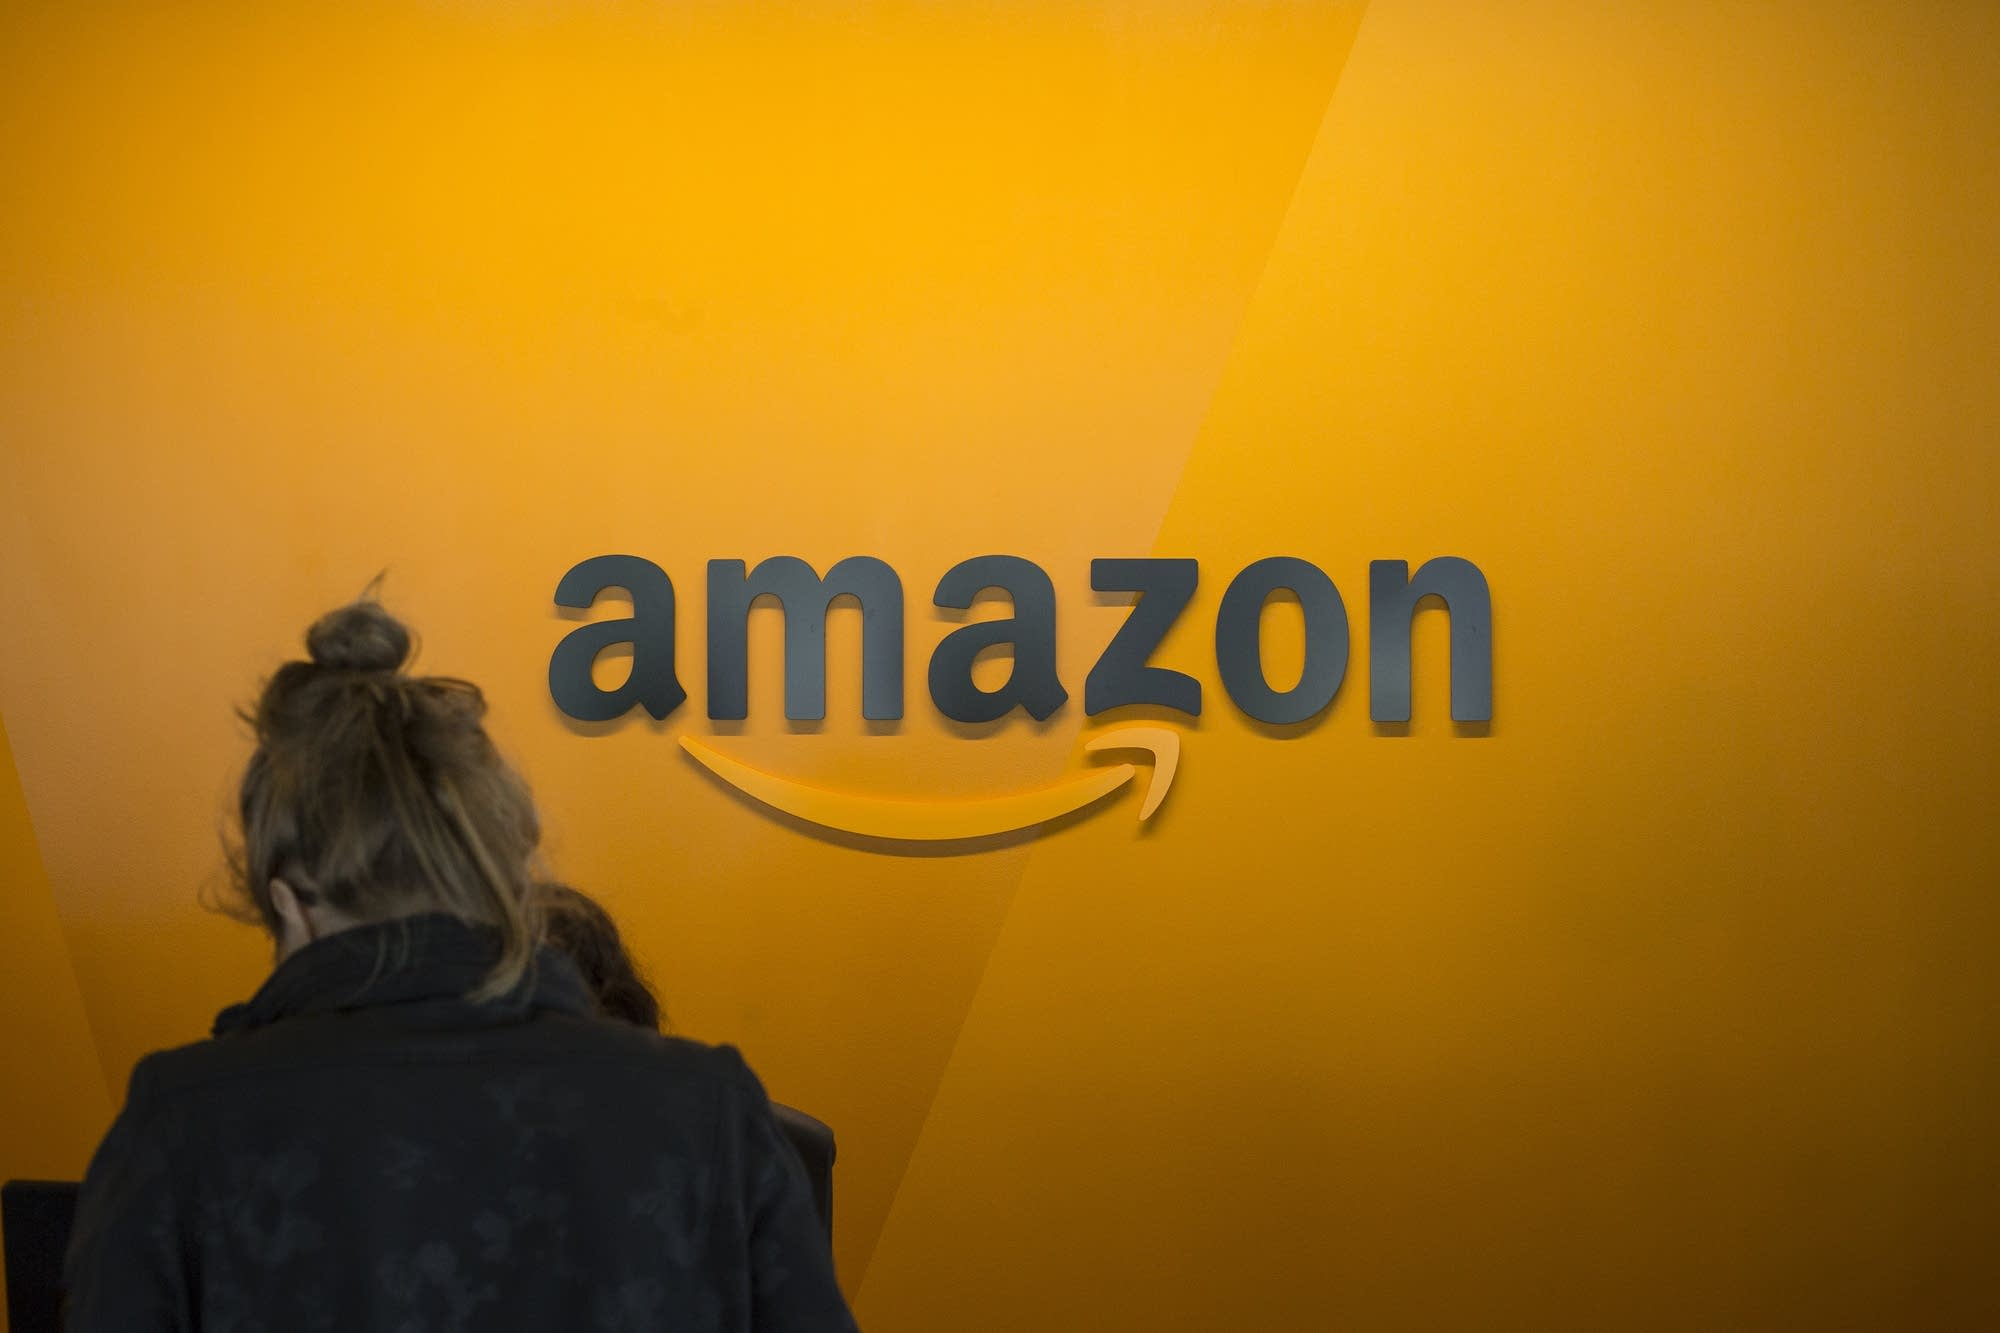 Amazon to employ 3000 people at new Vancouver facility